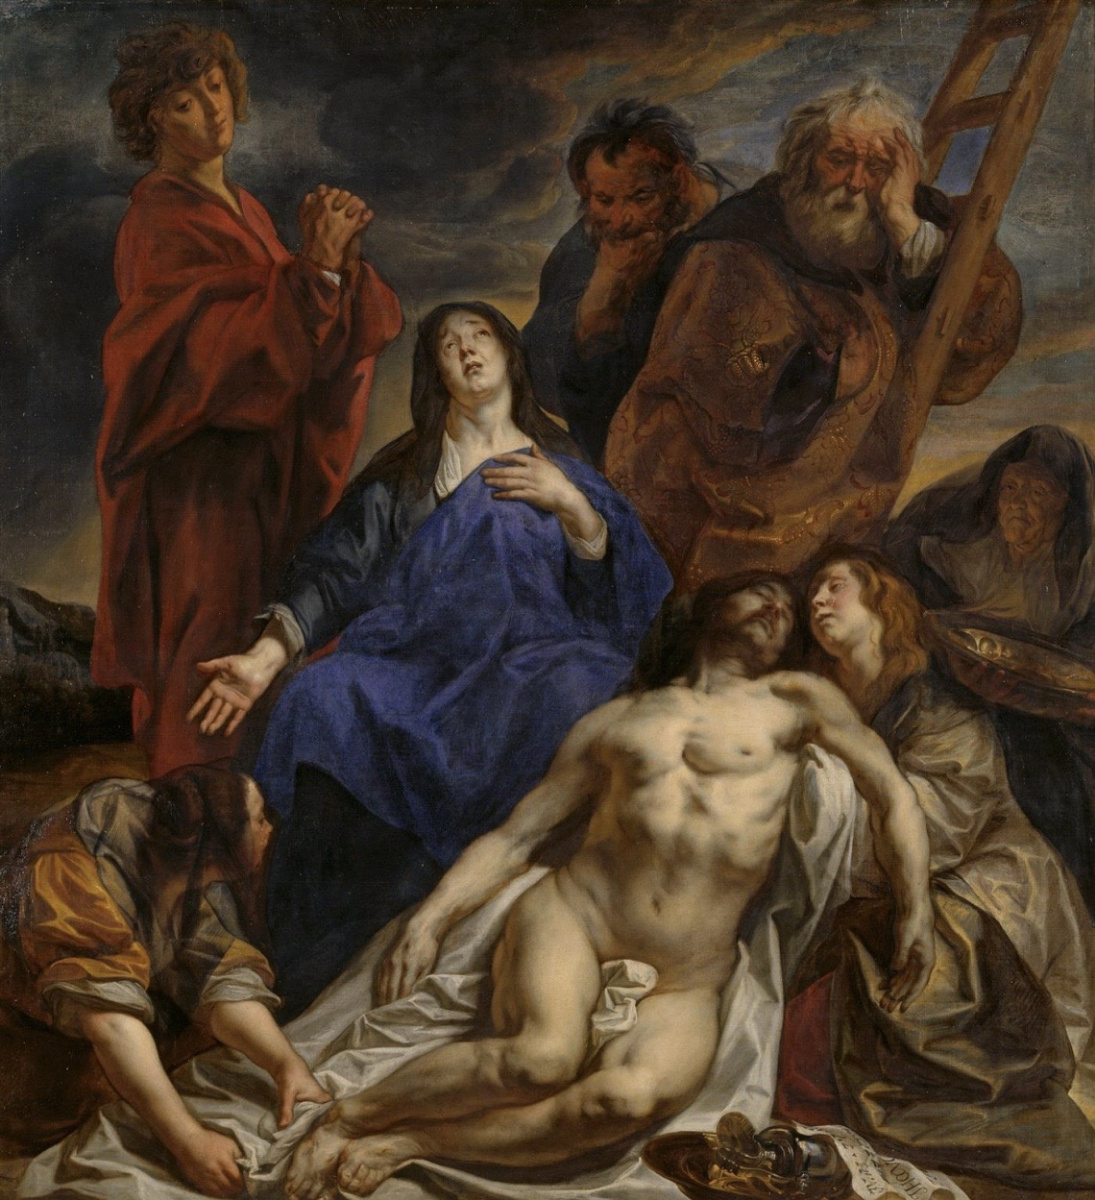 Jacob Jordaens. Lamenting christ